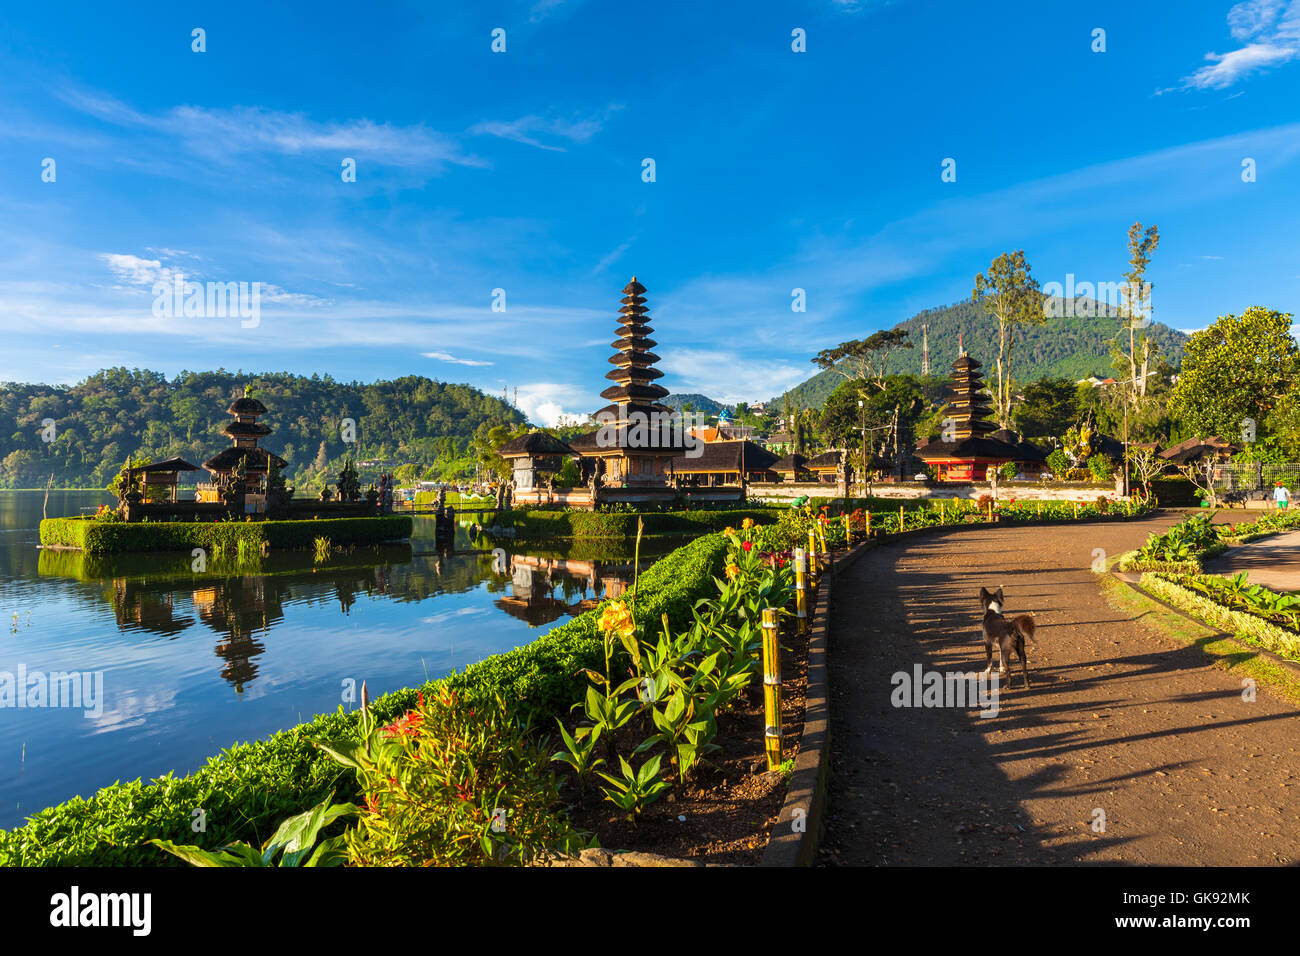 Pura Ulun Danu Bratan at sunrise, famous temple on the lake, Bedugul, Bali, Indonesia. Stock Photo